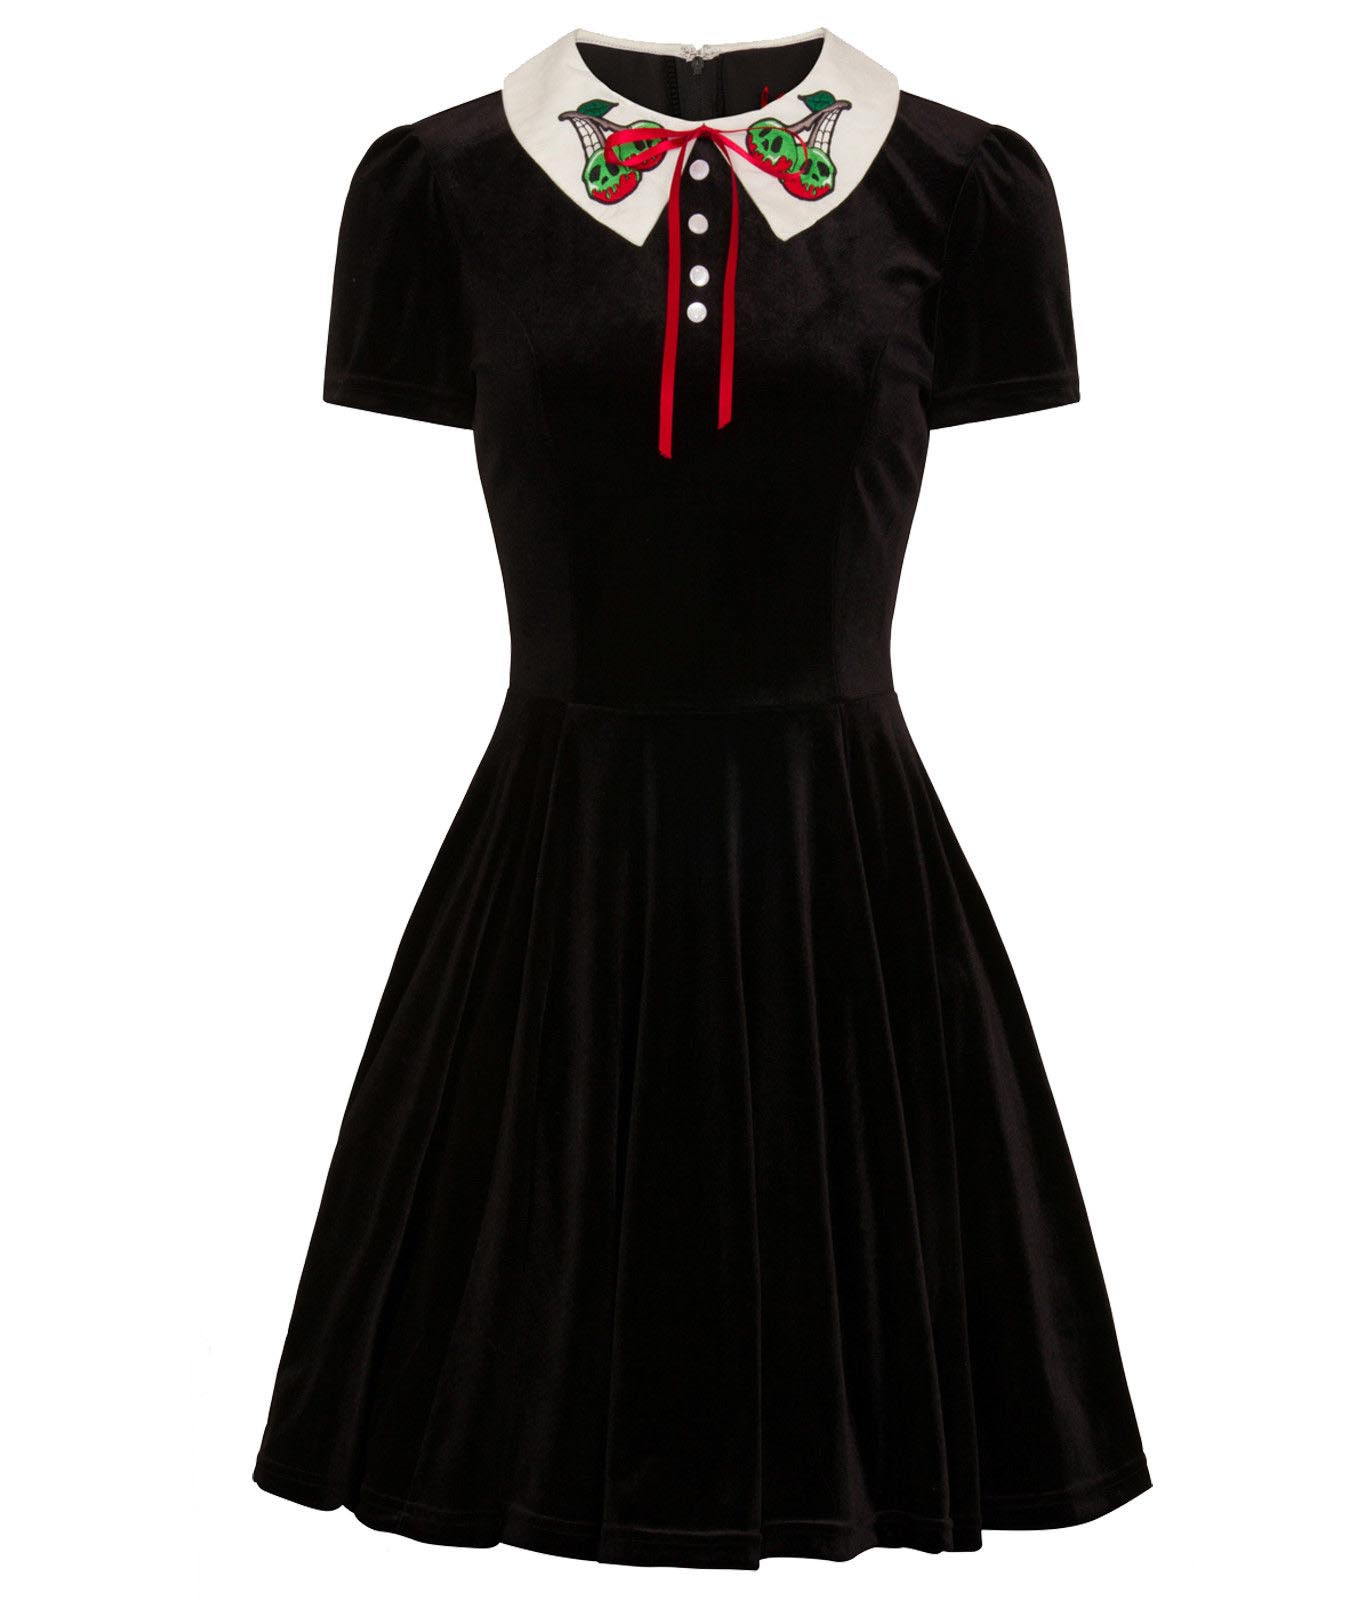 Hell-Bunny-Goth-Mini-Skater-Dress-NIGHTSHADE-Poison-Cherry-Black-Velvet-All-Size thumbnail 23